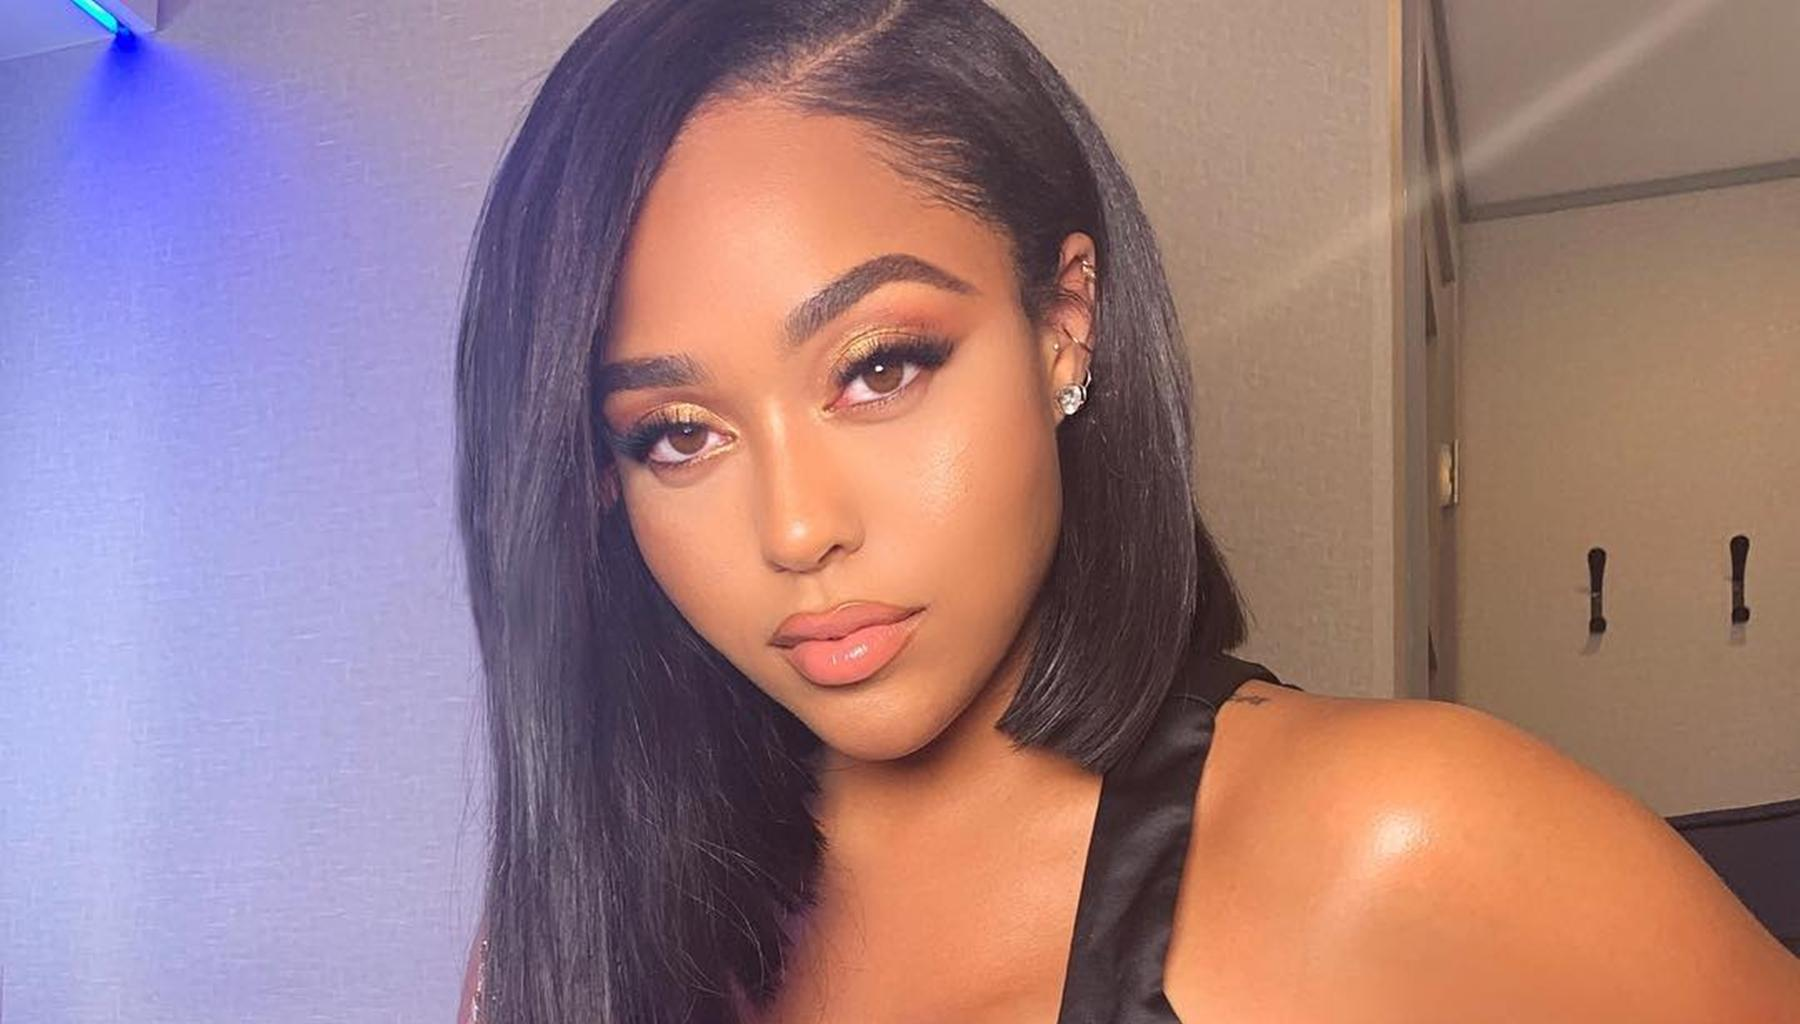 Jordyn Woods Breaks The Internet With These Almost NSFW Swimsuit Photos - Check Out Her Best Assets On Display